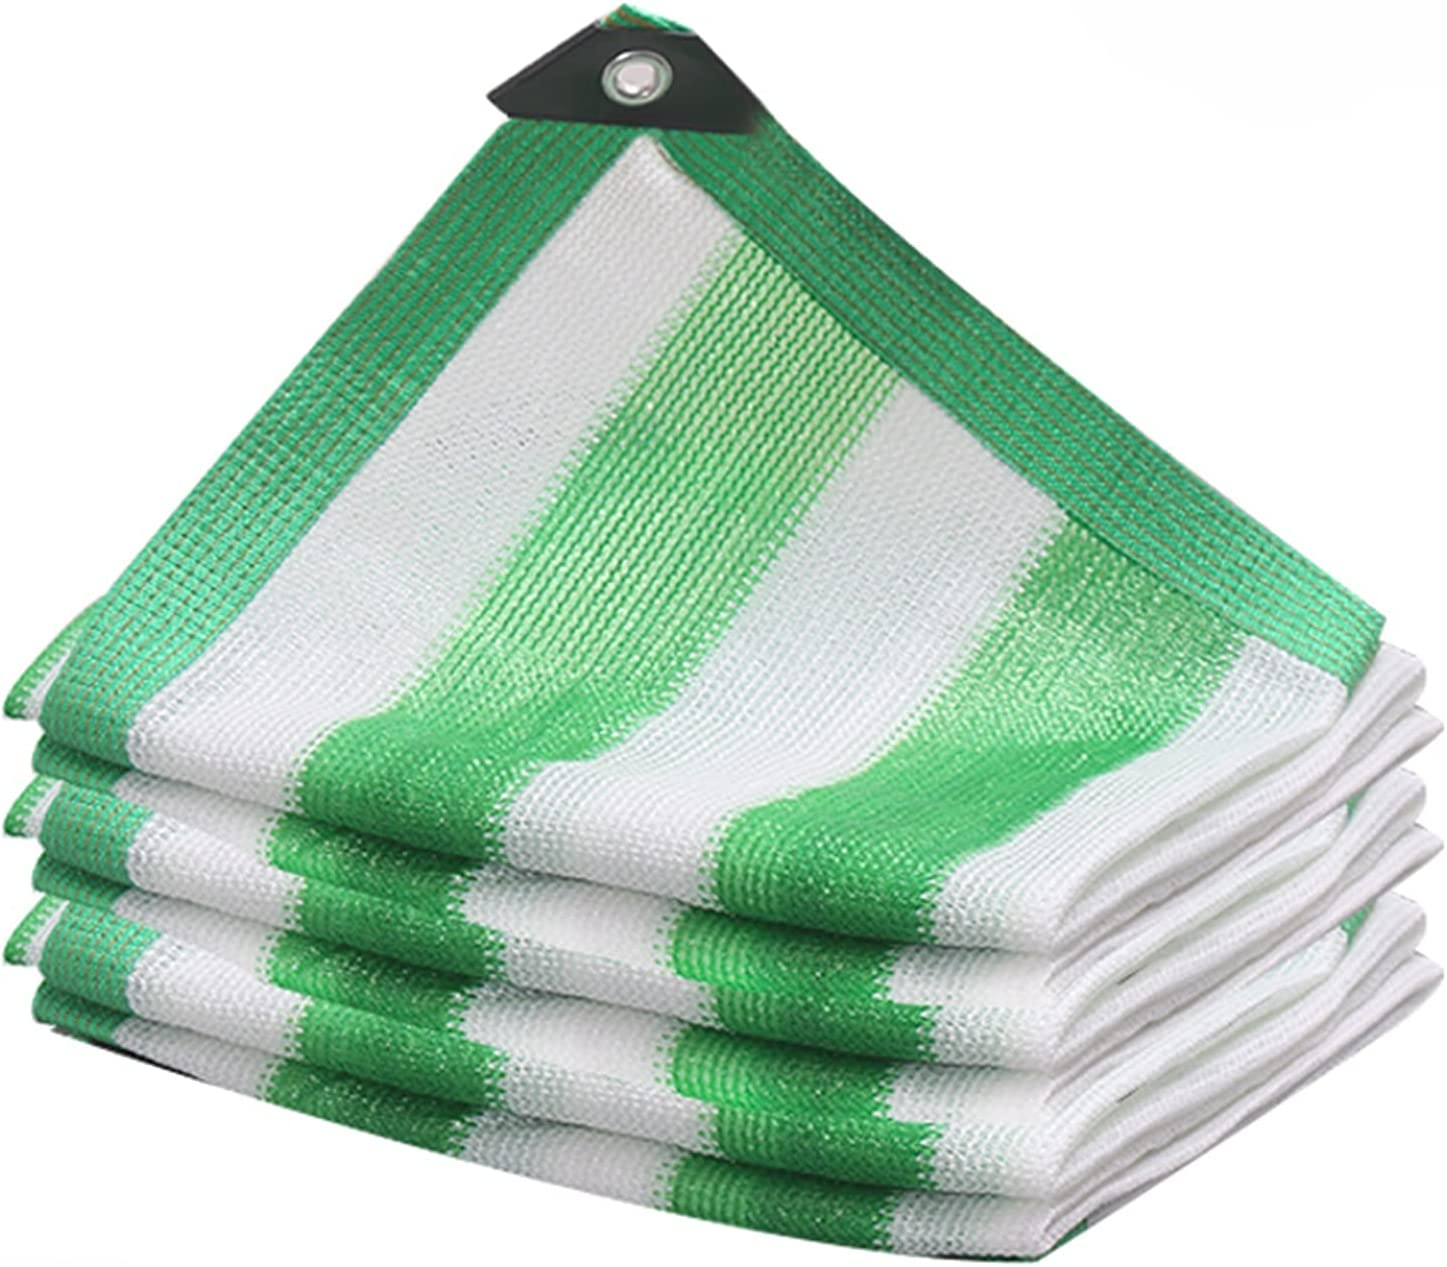 WZHIJUN Weekly update Our shop most popular 90% Green White Sun Cloth Garde Shade Protection Outdoor